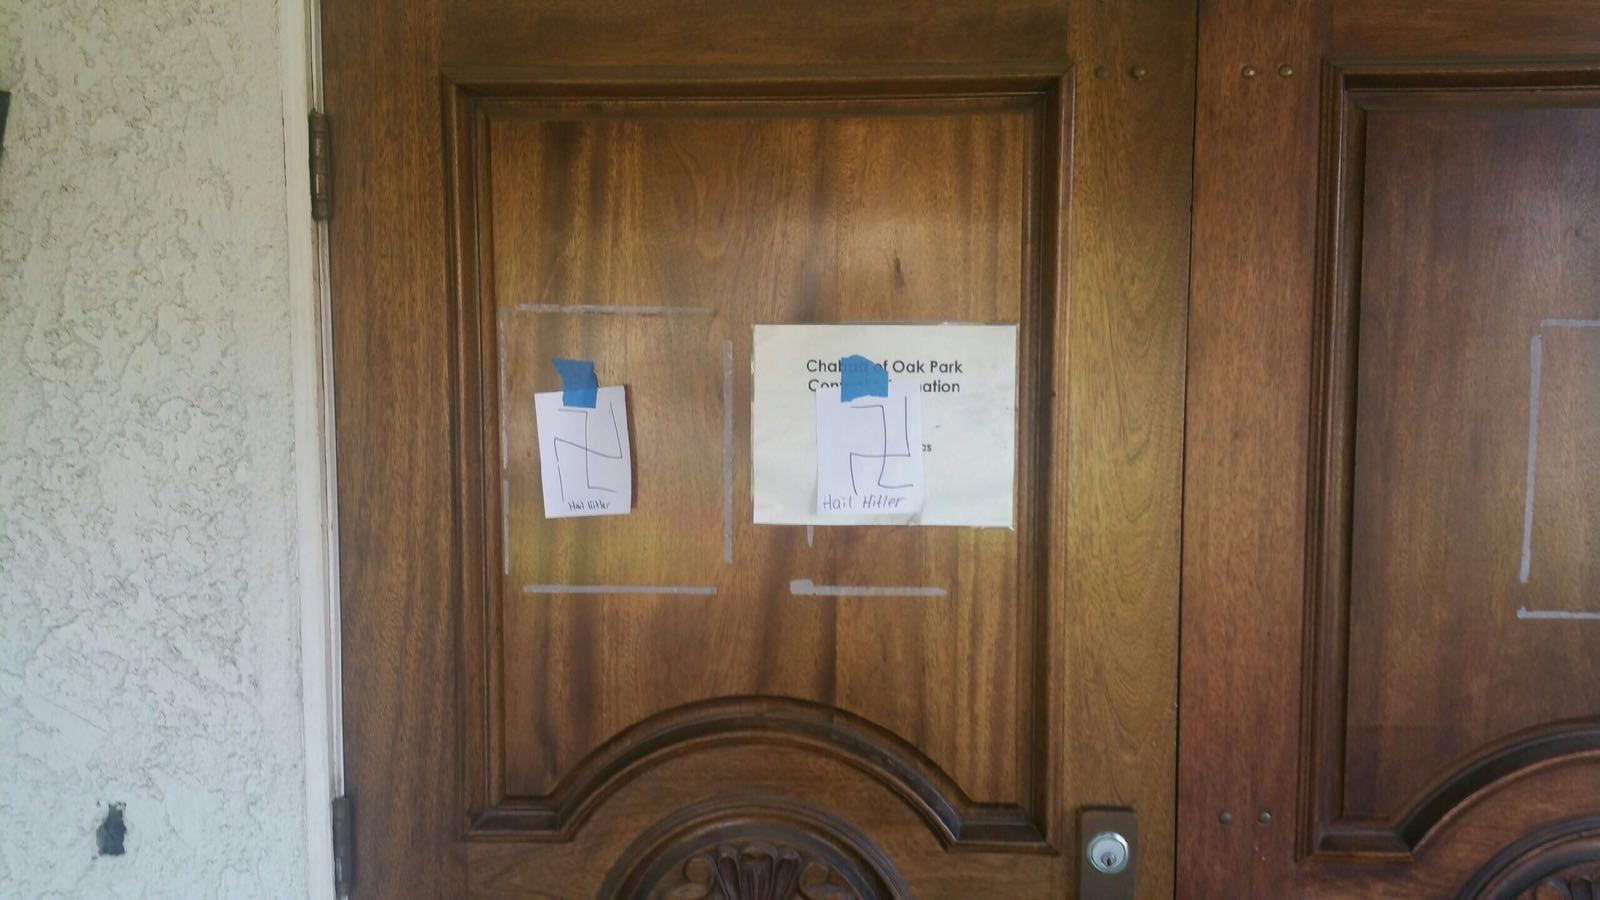 Chabad of Oak Park discovered notes praising Adolf Hitler on its doors Feb. 11. The temple has faced anti-Semitism as recently as 2010, when a note was spray-painted on its walls (reprinted with permission from Ventura County Sheriffś Department).